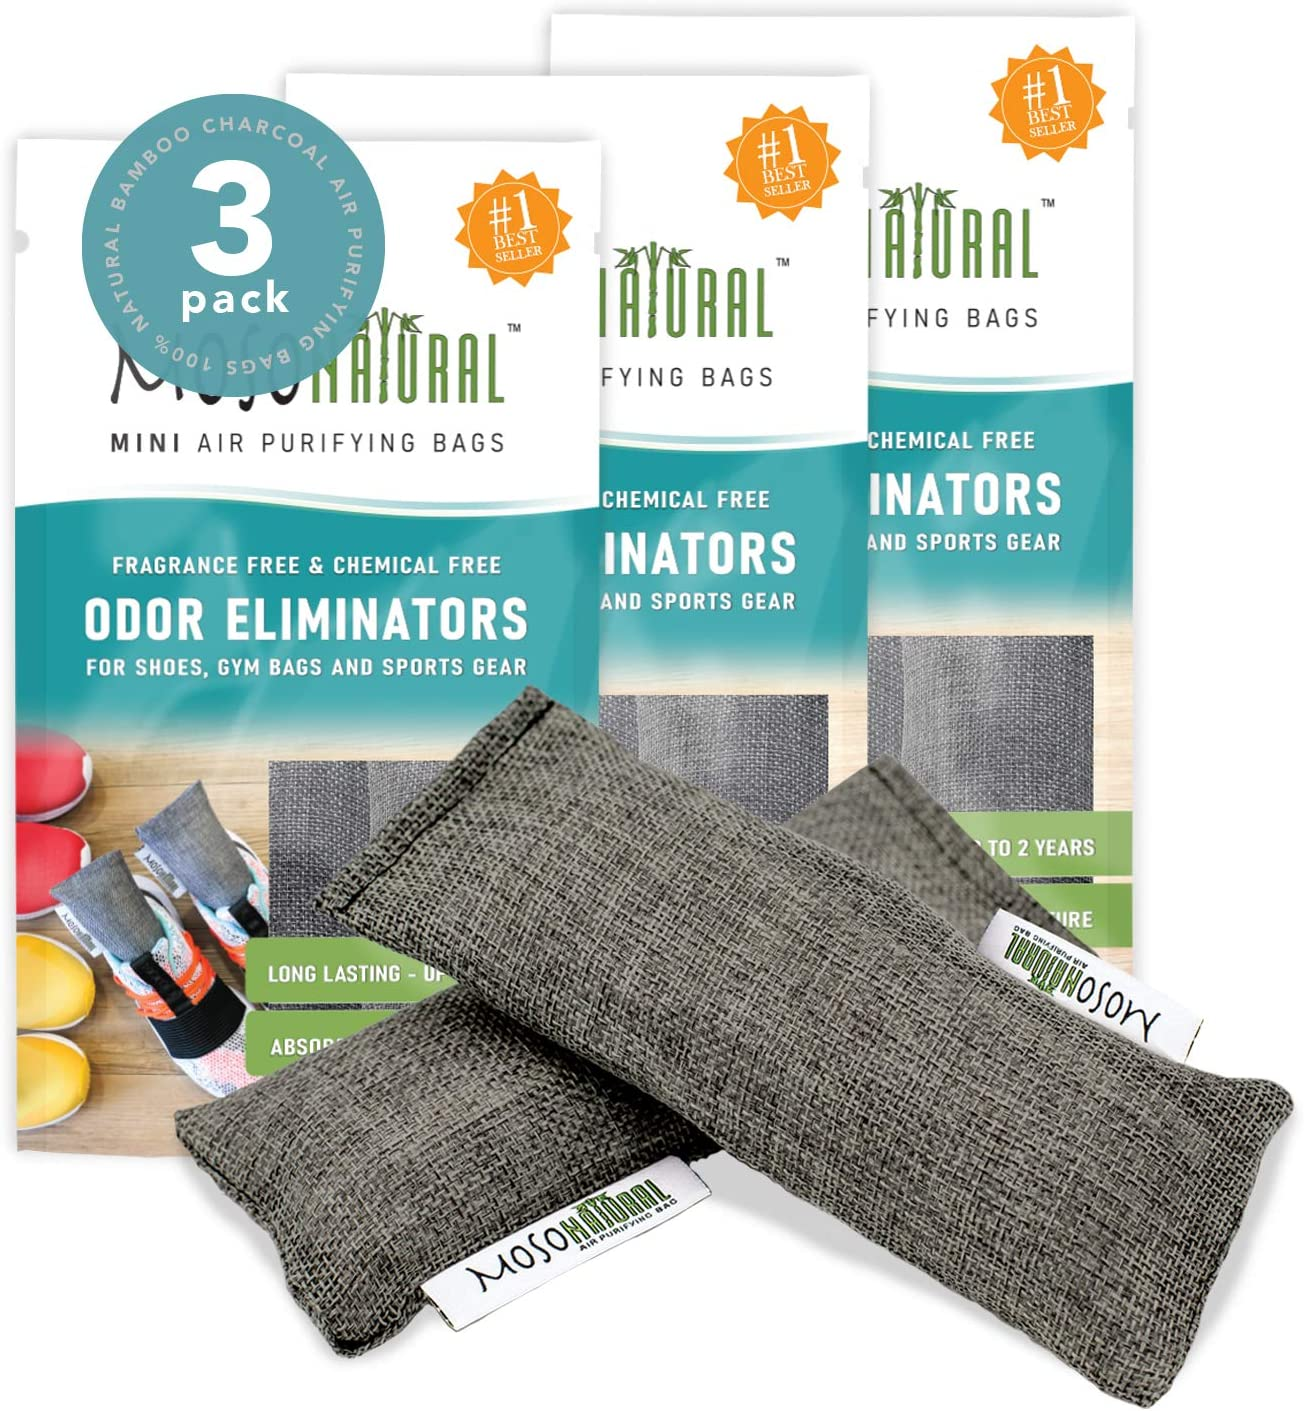 MOSO NATURAL: The Original Air Purifying Bag for Shoes, Gym Bags and Sports Gear. an Unscented, Chemical-Free Odor Eliminator 2 Packs of 3 (6 Total)